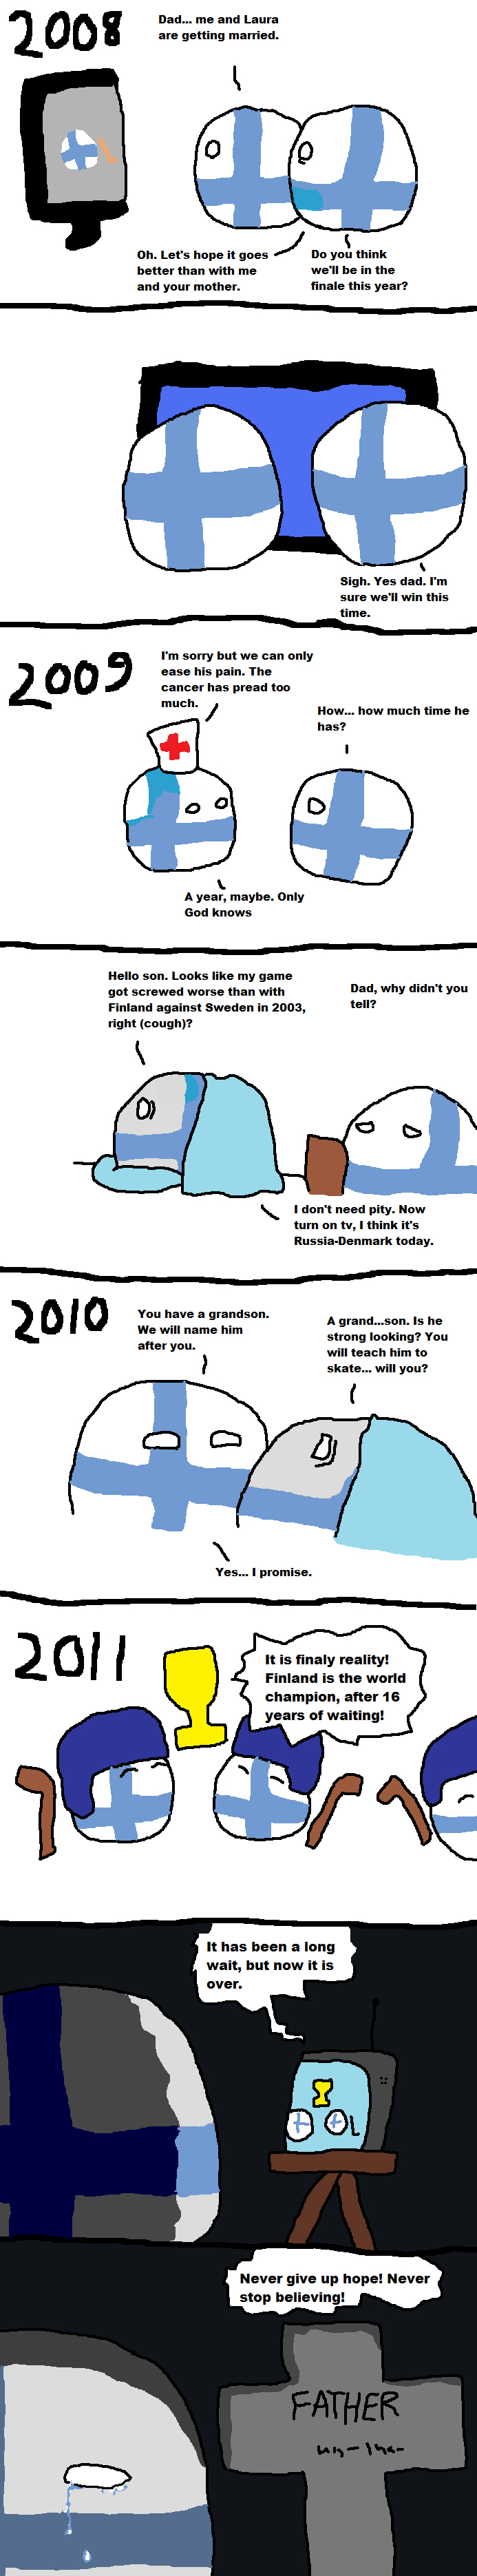 """Finland's dad part-2"" #polandball #countryball #flagball"